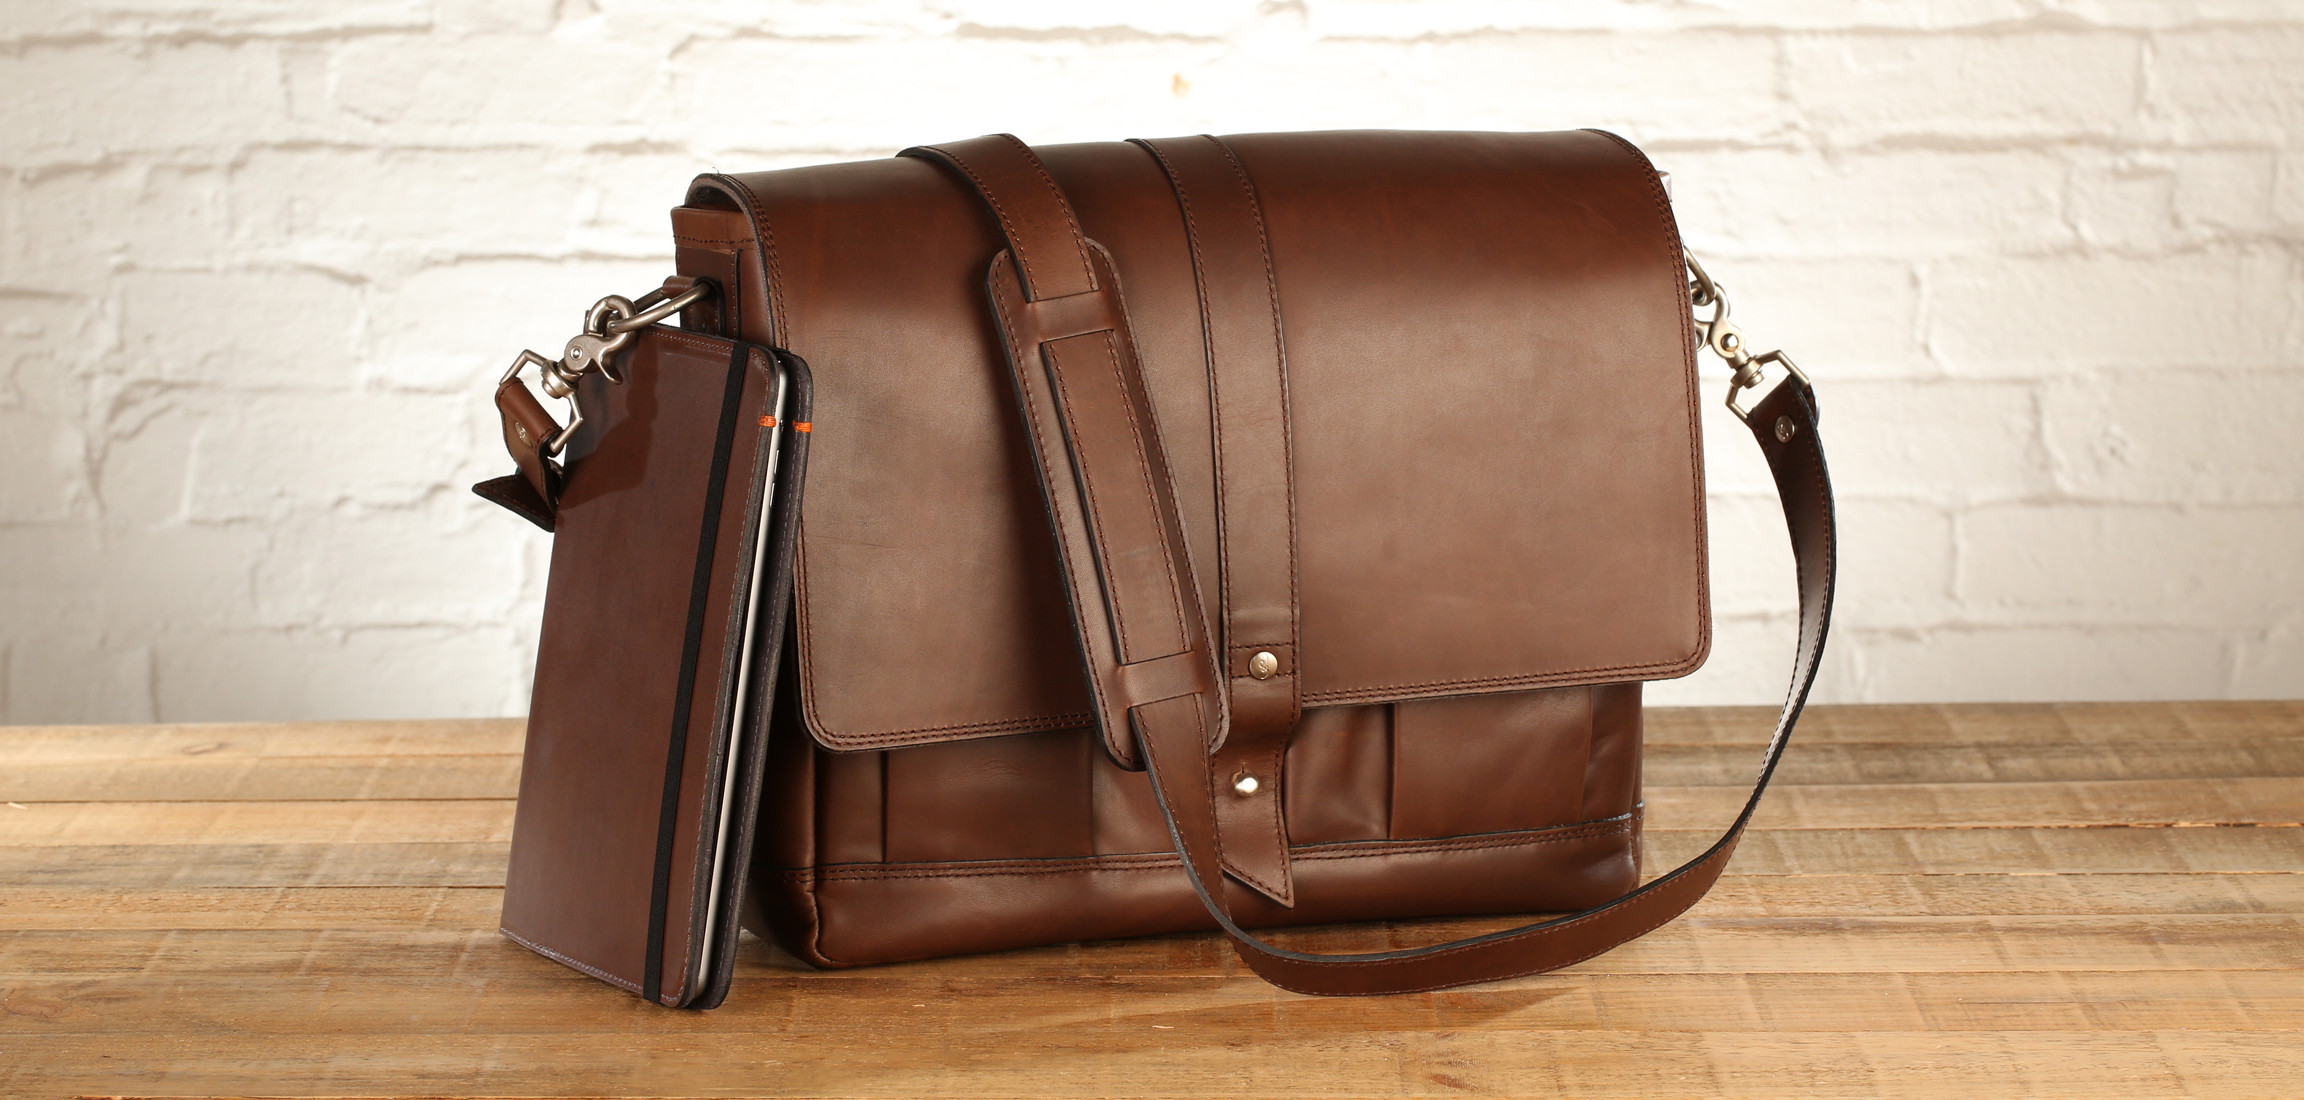 The Attache Leather Bag and Oxford case for iPad Air